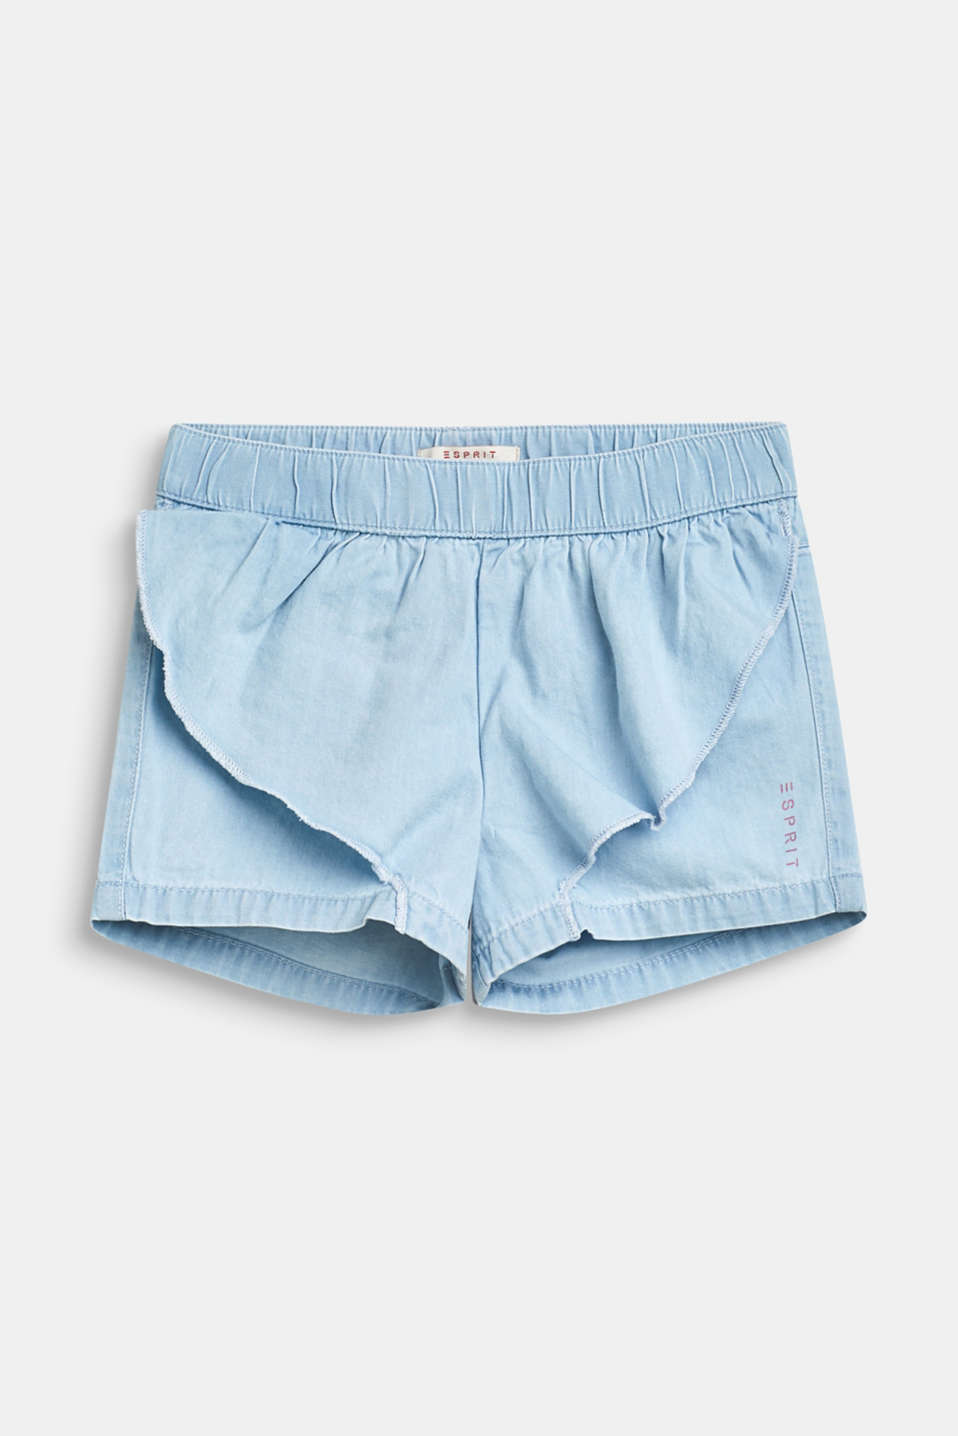 Esprit - Frill detail denim shorts, 100% cotton